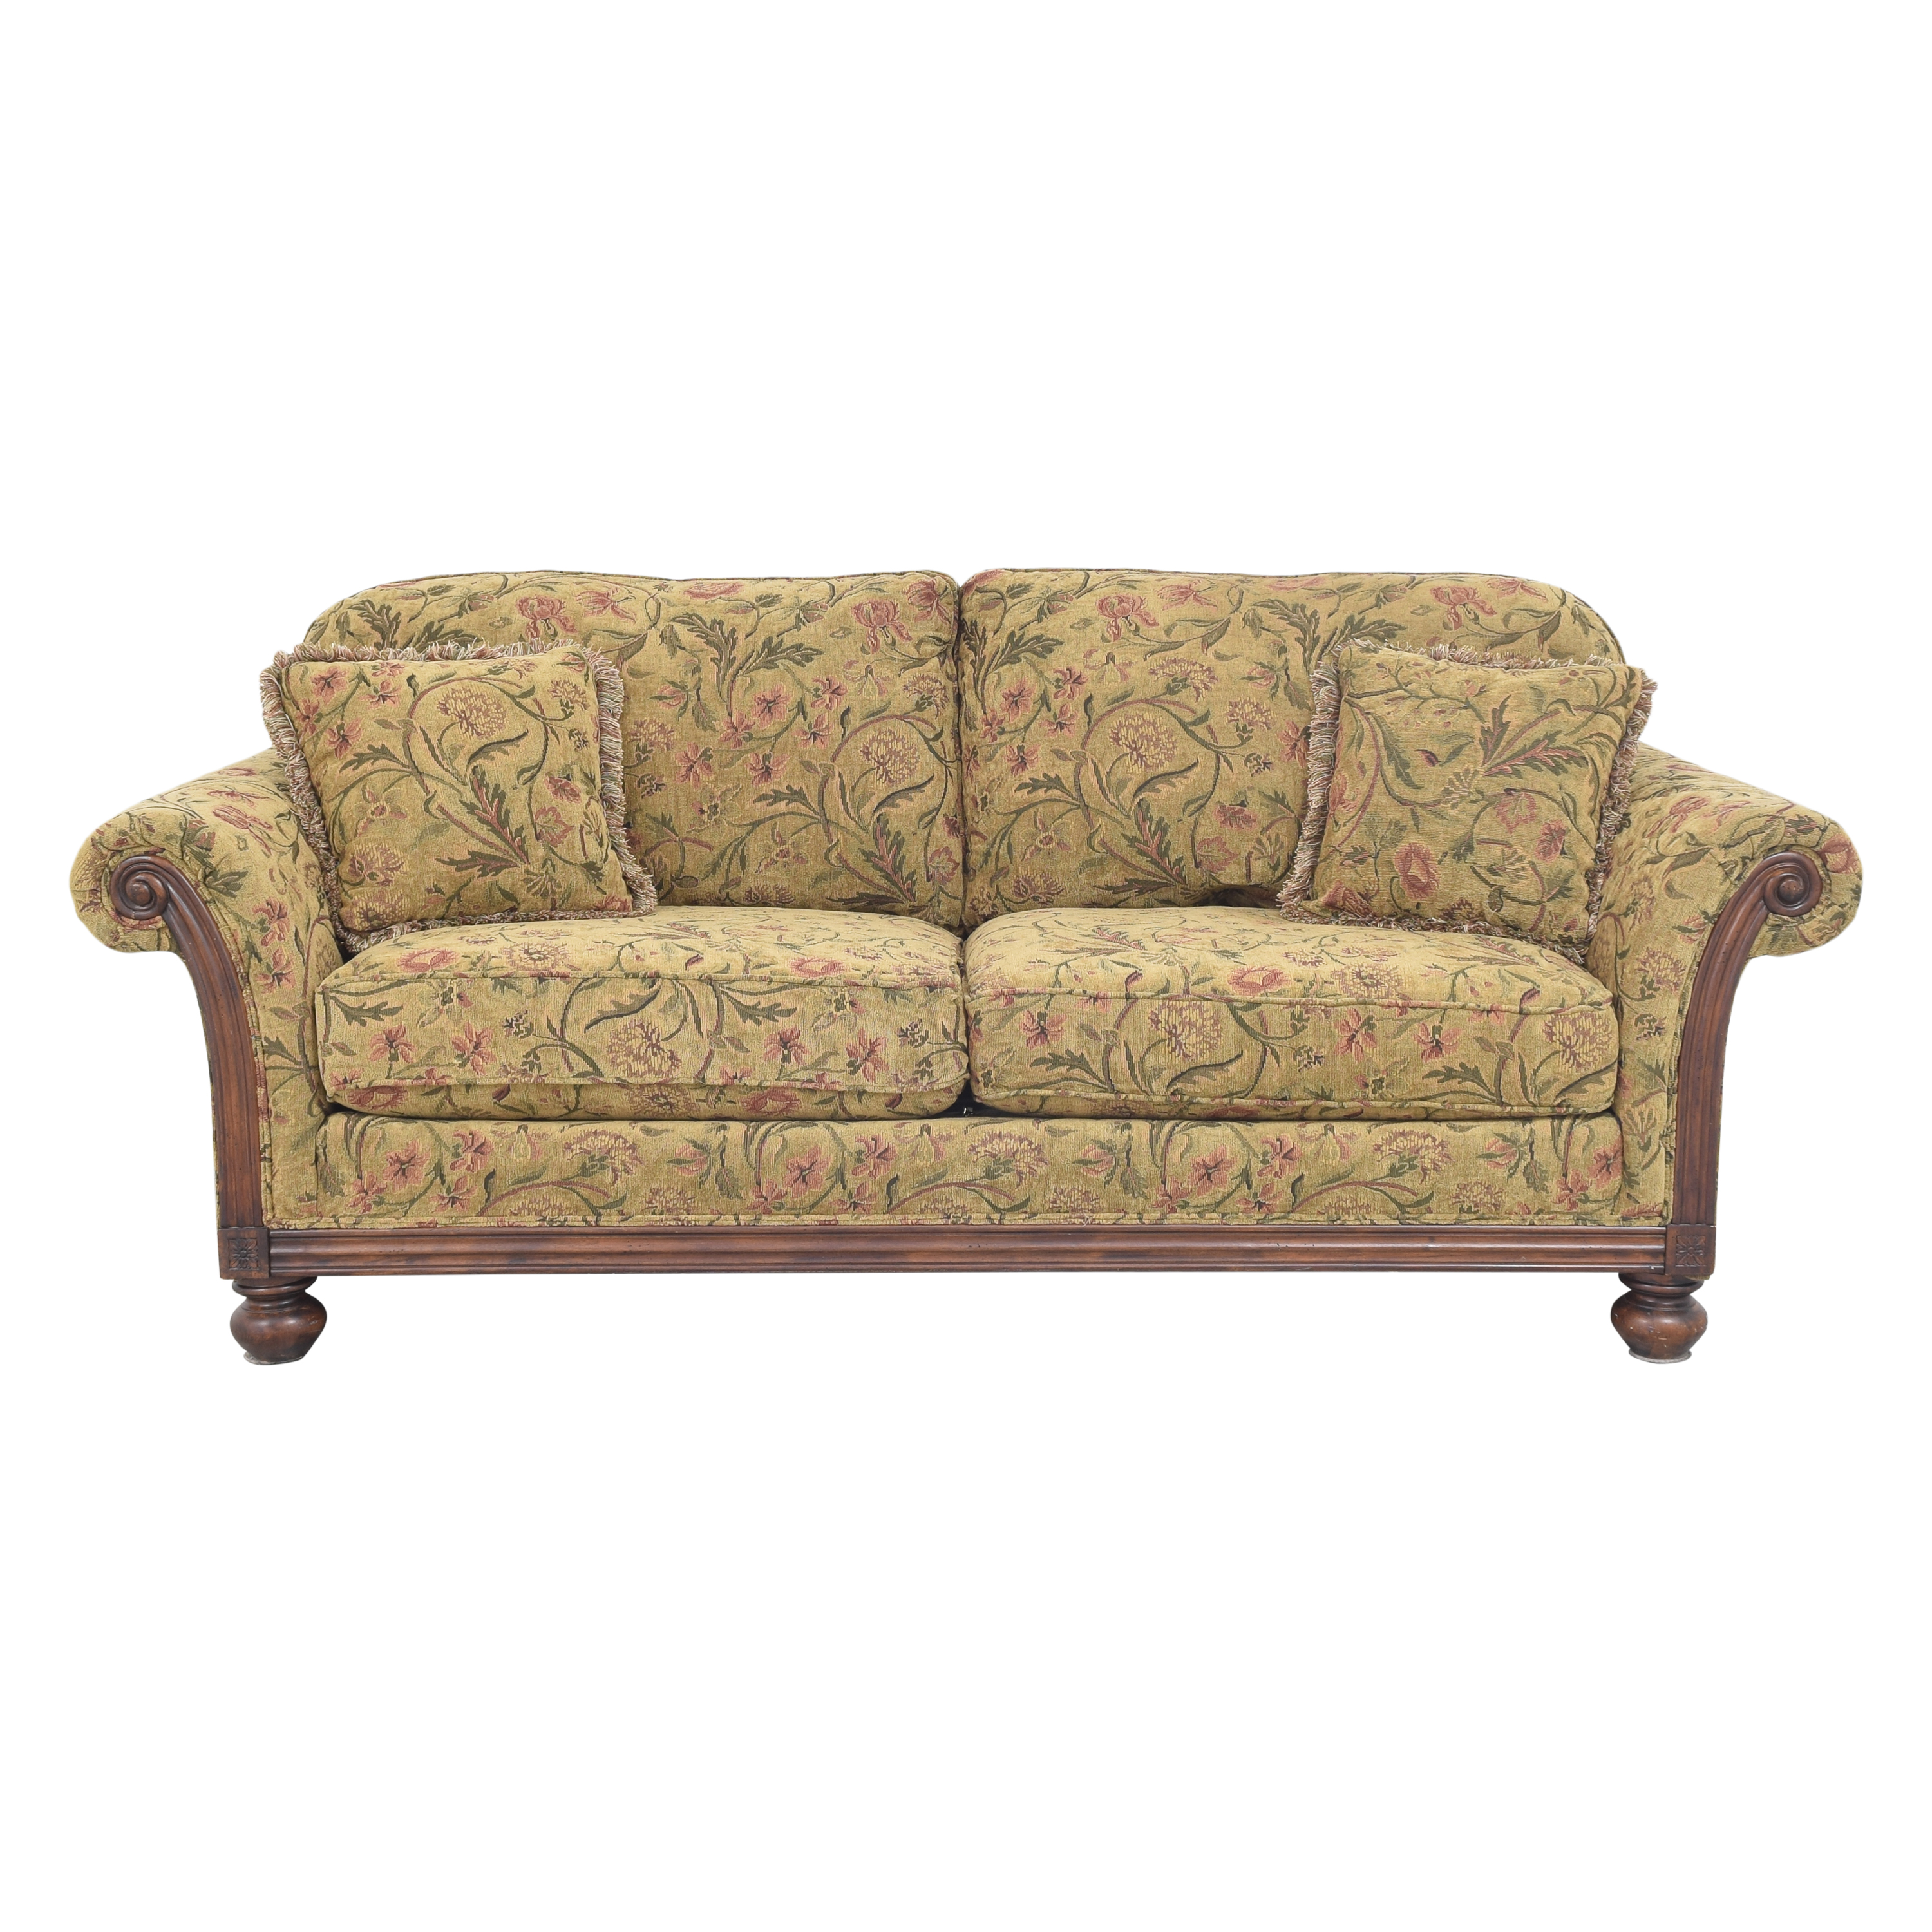 Clayton Marcus Clayton Marcus Floral Roll Arm Sofa price